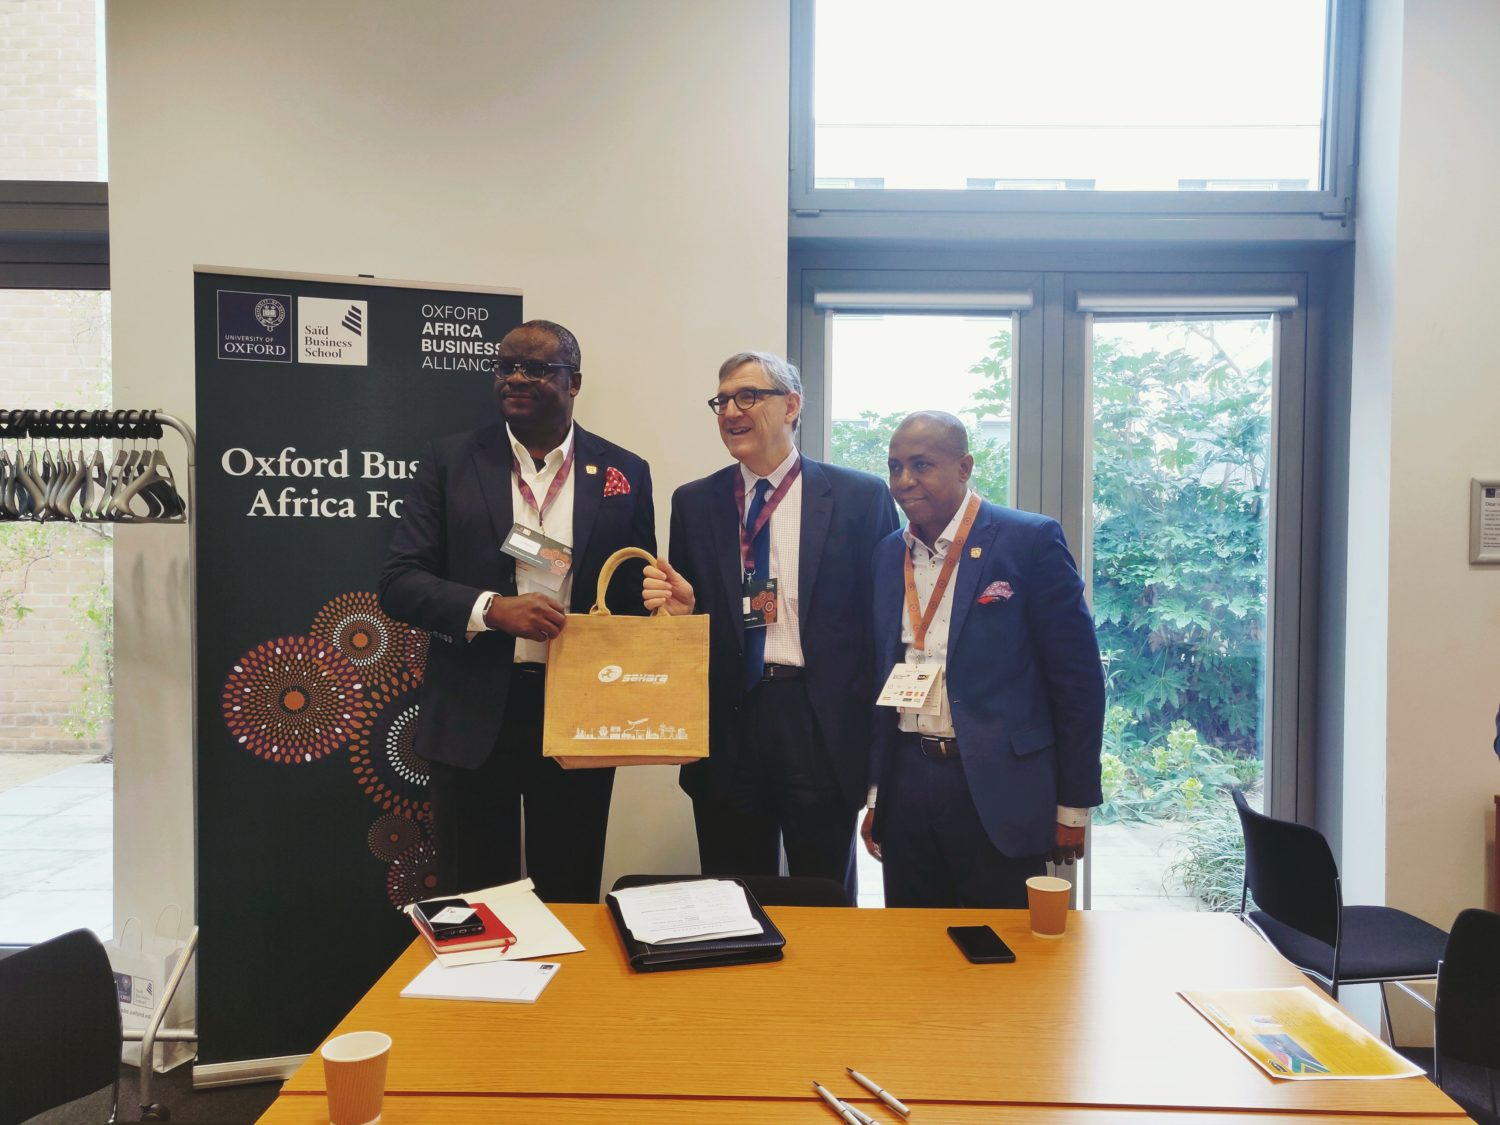 Group Managing Director, Sahara Power Group, Kola Adesina, Dean, Saïd Busines School, University of Oxford, Peter Tufano and Head, Corporate Communications, Sahara Group, Bethel Obioma at the 2019 Oxford Business Forum Africa in Oxford, United Kingdom on March 9, 2019